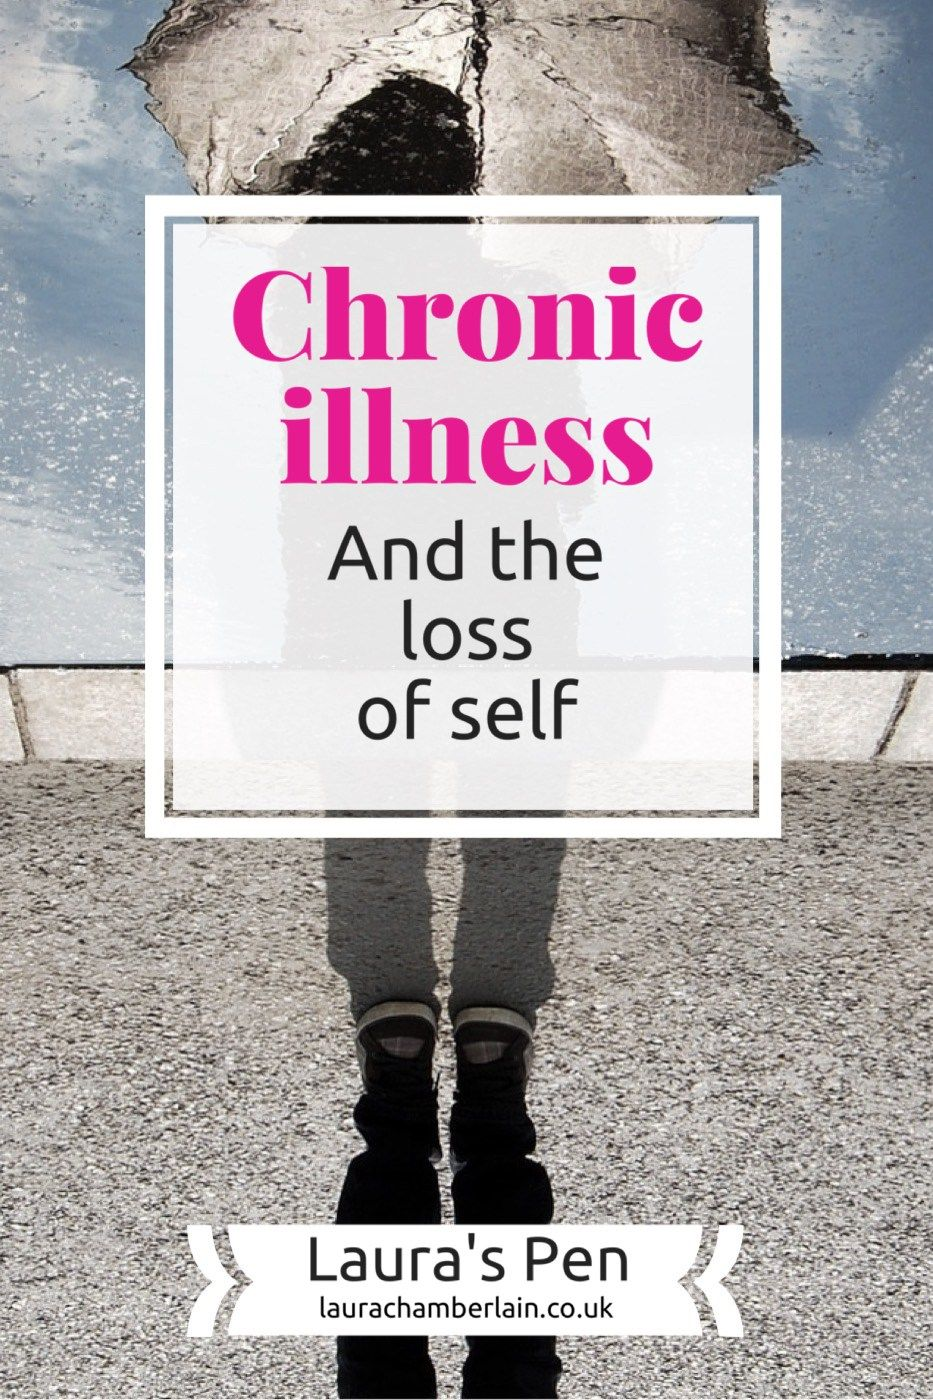 Chronic pain and the loss of self